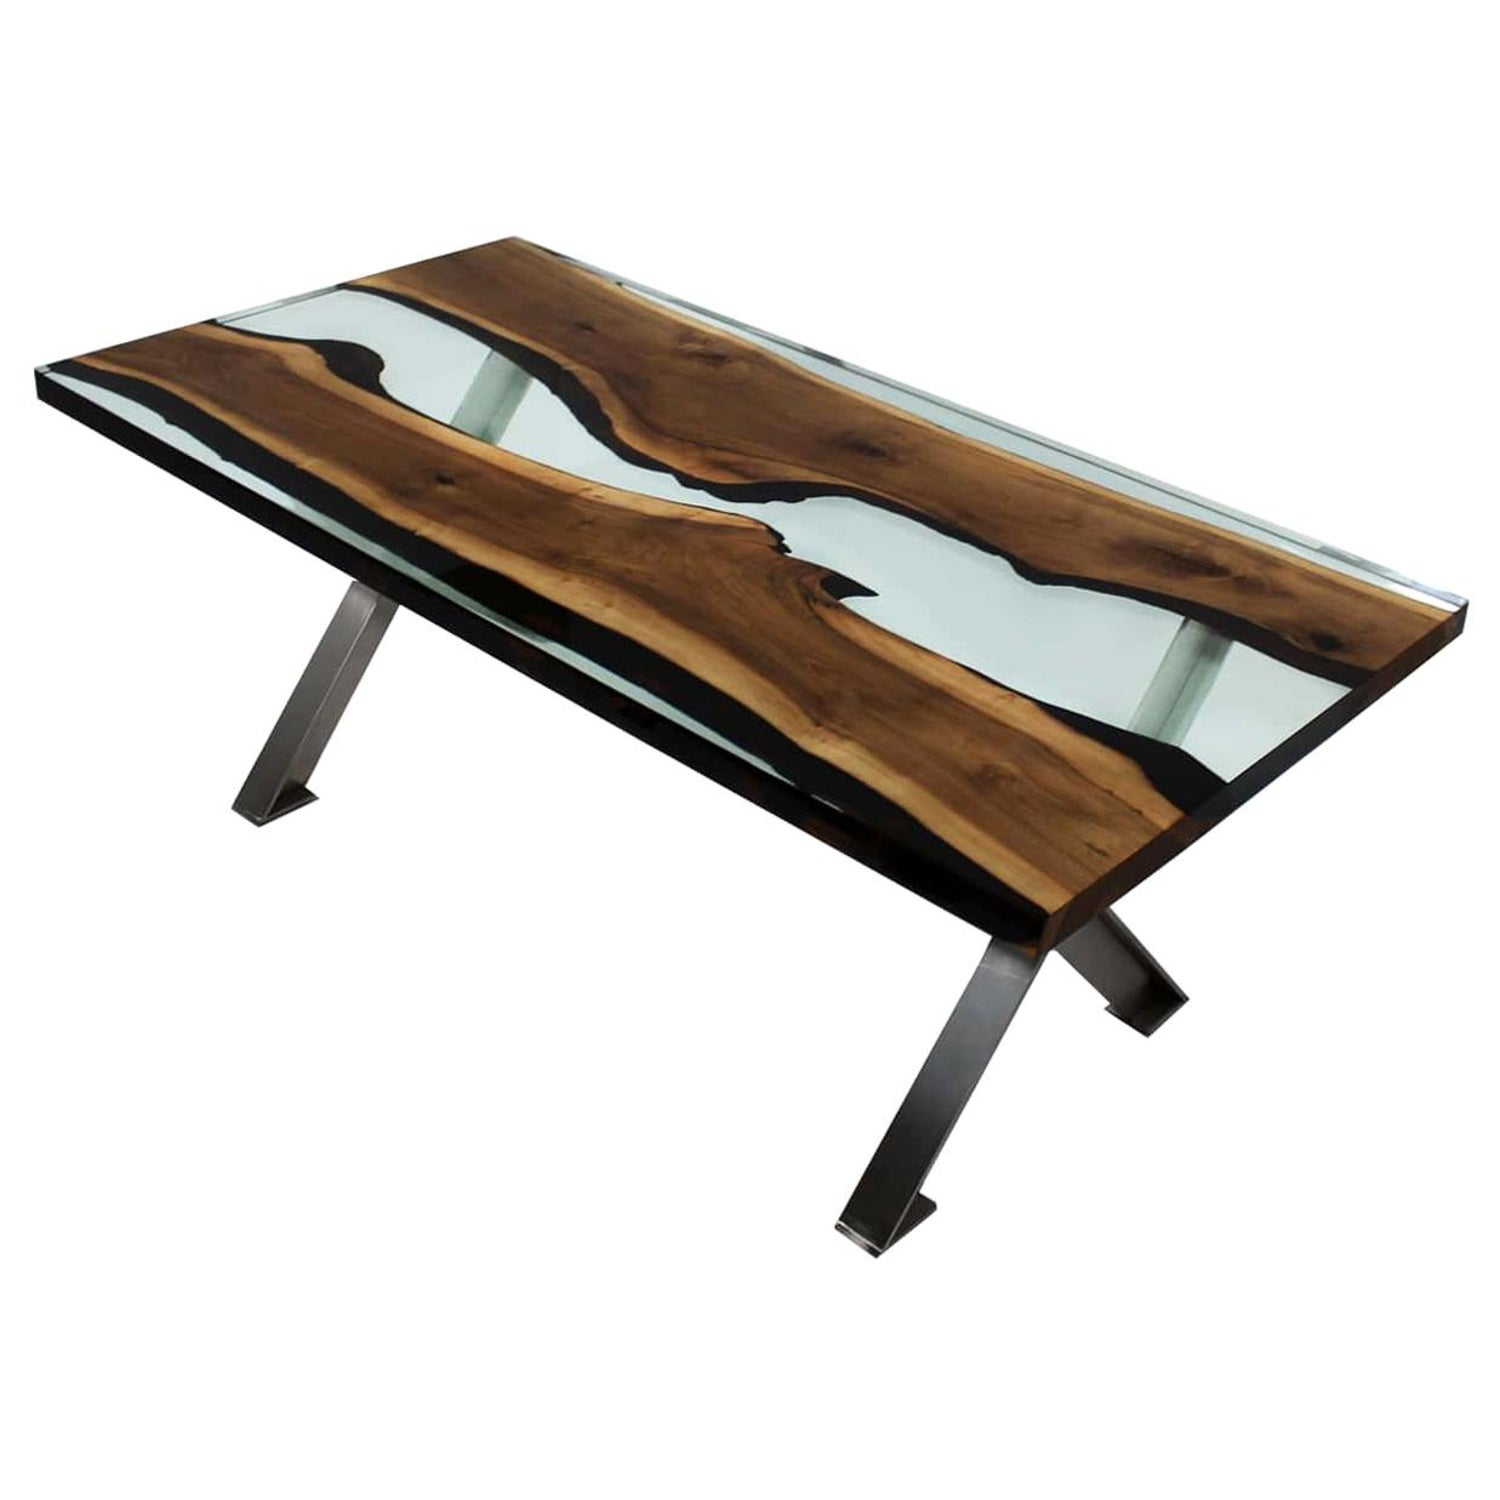 Magnificent Primitive 200 Epoxy Resin Dining Tables With X Legs Machost Co Dining Chair Design Ideas Machostcouk